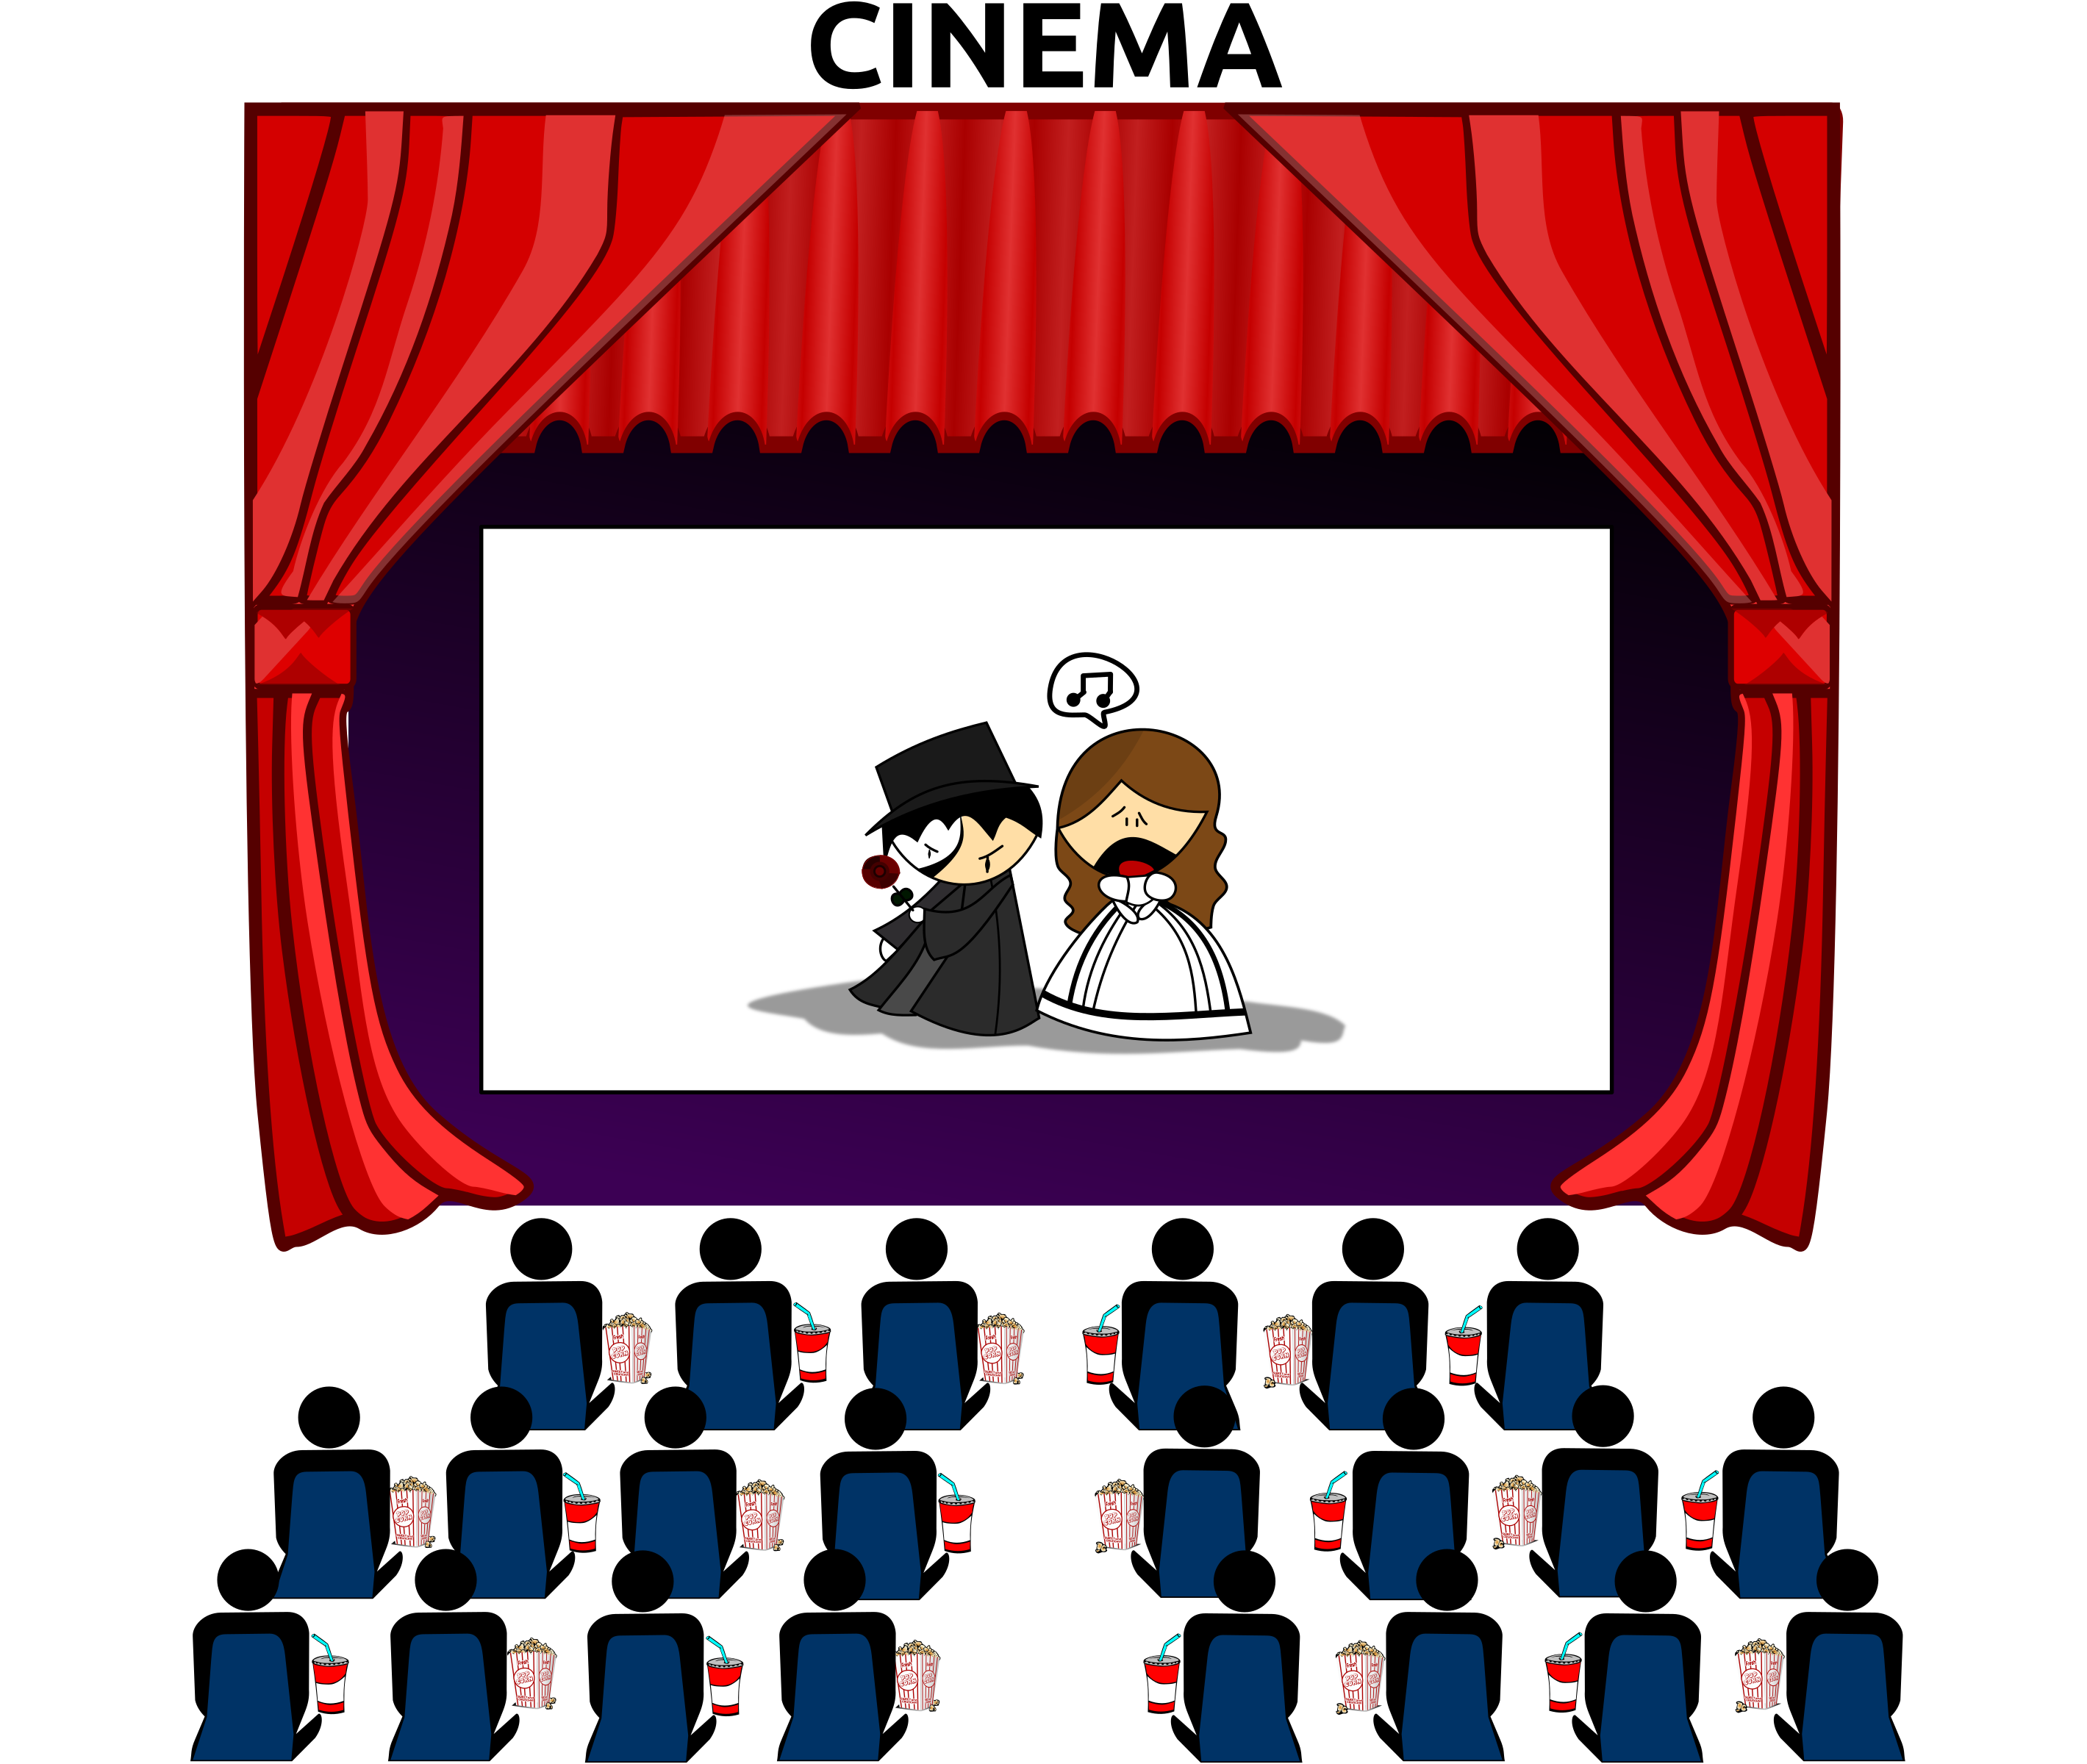 Club clipart drama movie. Cinema icons png free